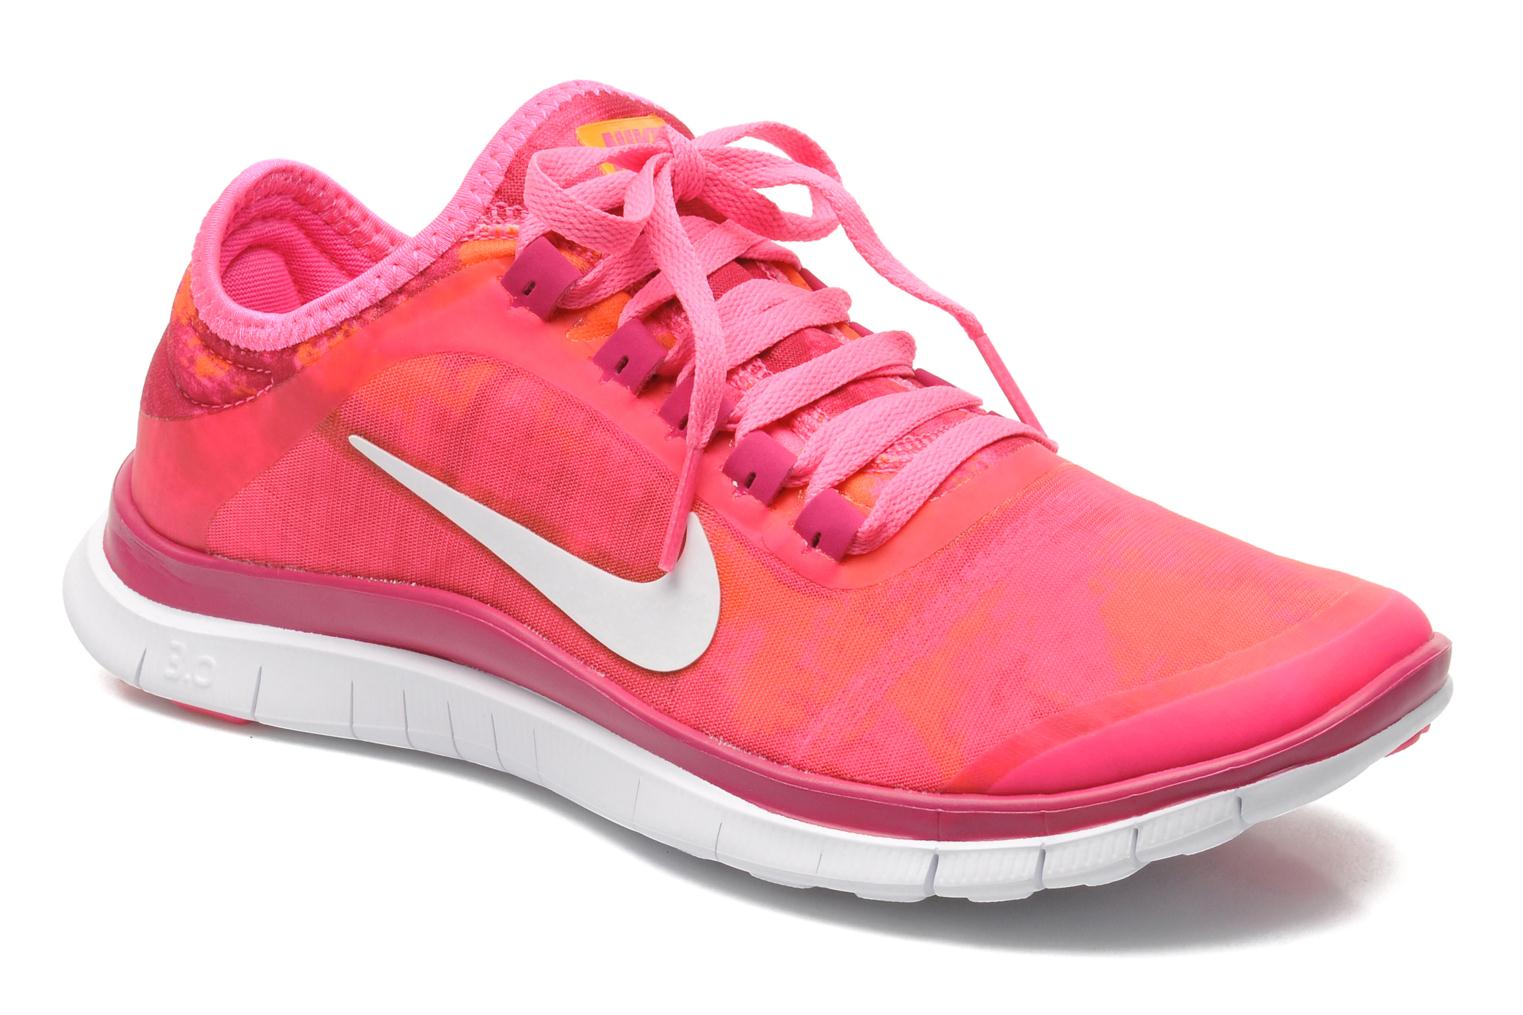 Wmns Nike Free 3.0 V5 Ext Prnt Pink Pow/White-Frbrry-Ttl Orng